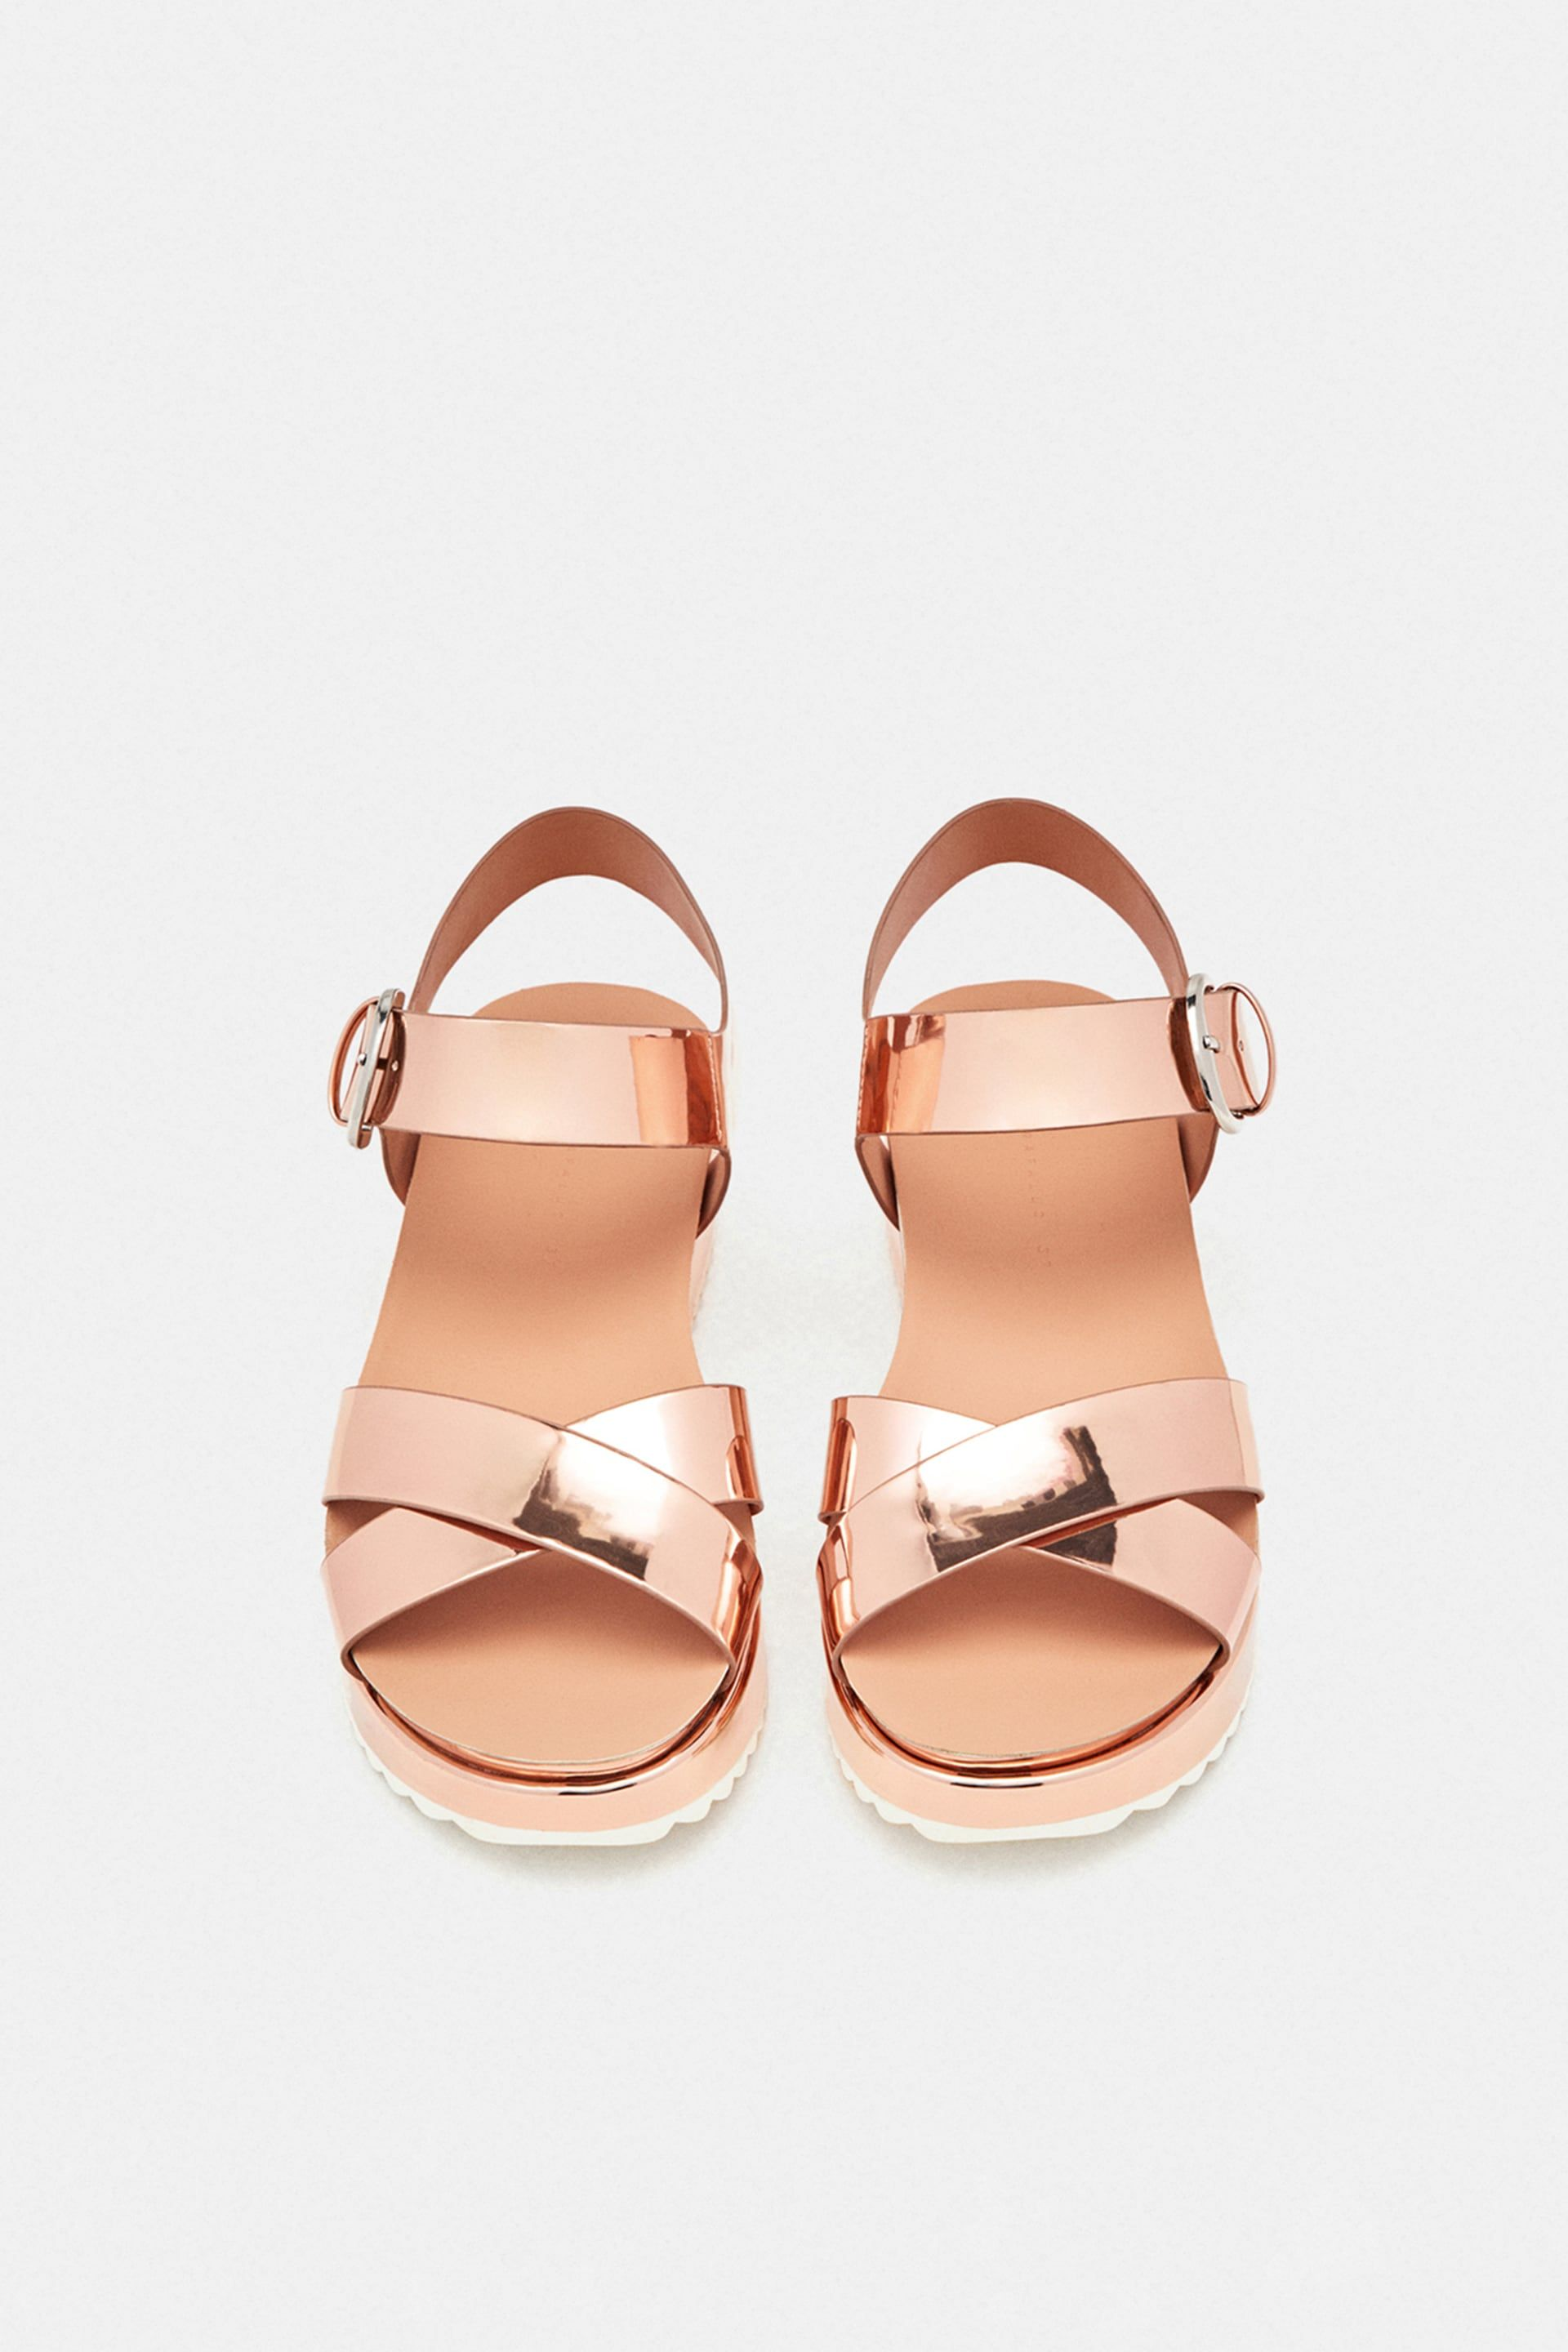 02f58befbfdde ZARA - WOMAN - SANDALS WITH LAMINATED STRAPS